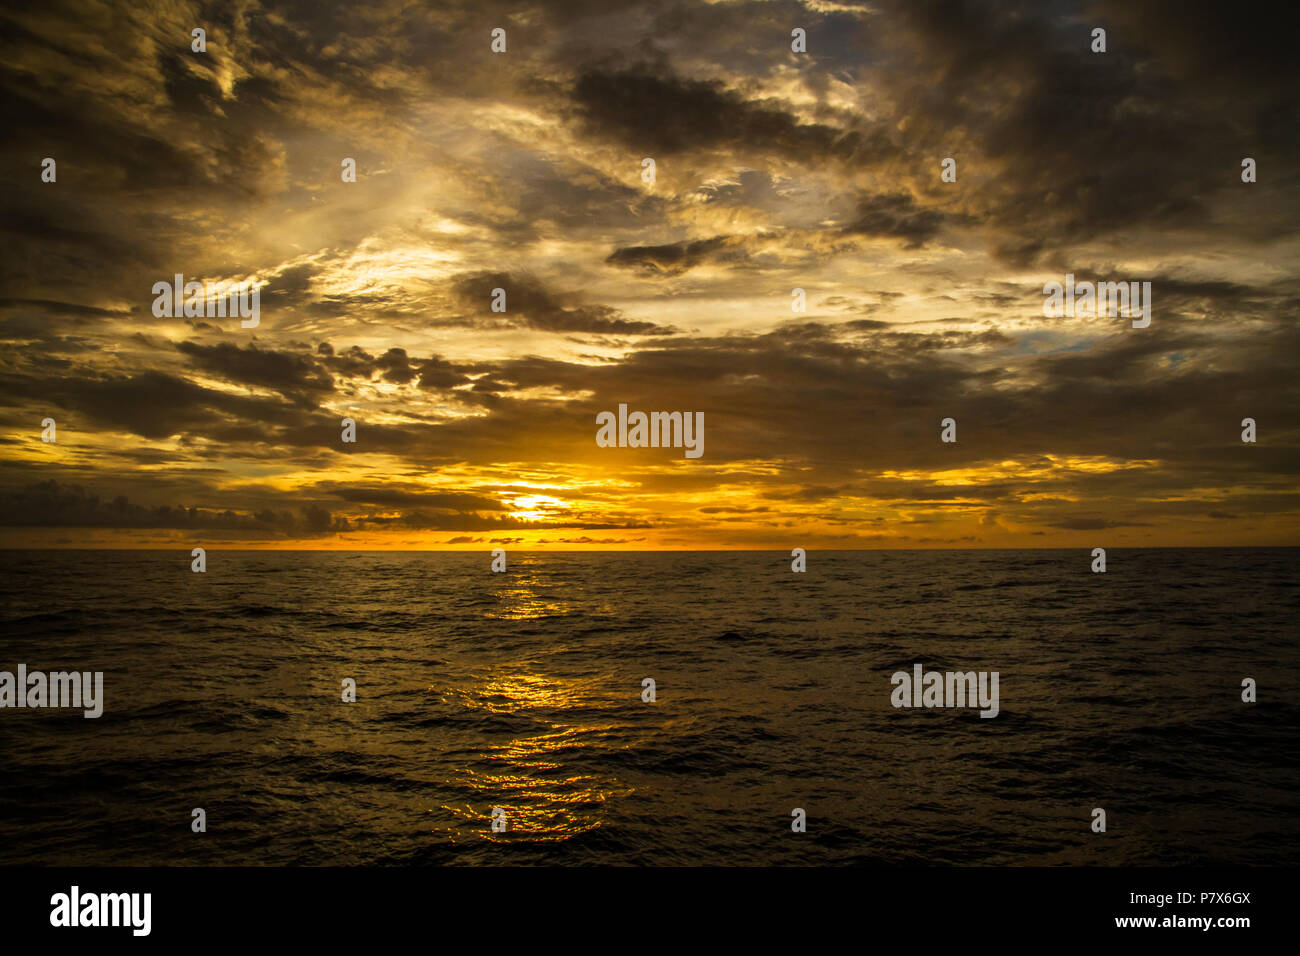 Beautiful sunset on the ocean with a dramatic cloud and golden sunset sky - Stock Image